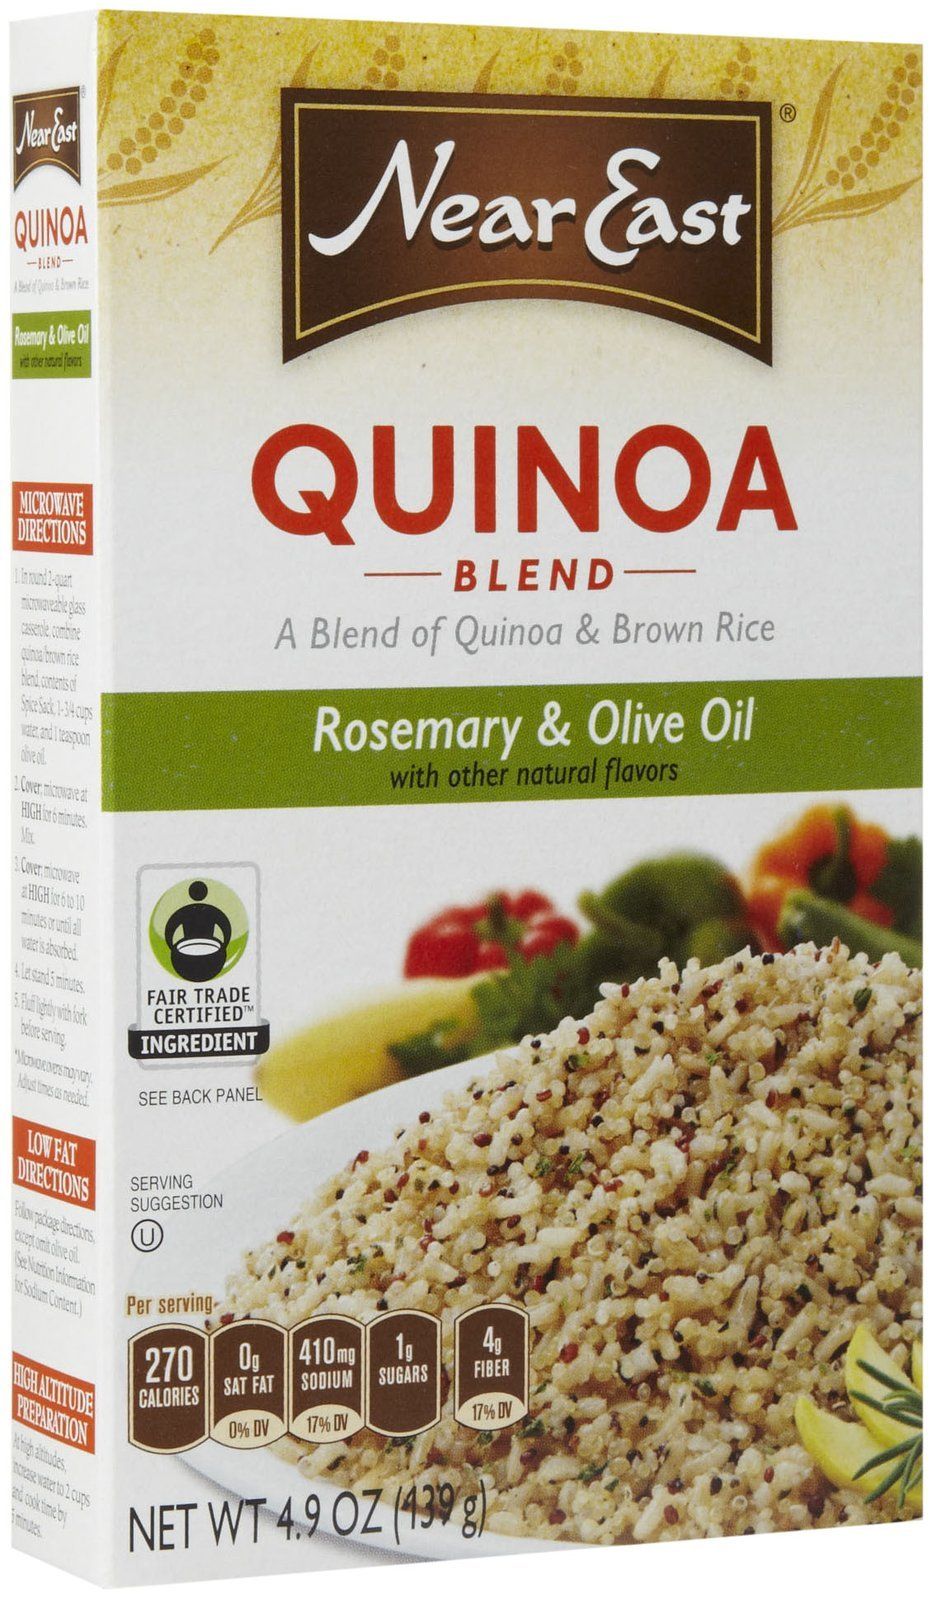 Near East Rosemary & Olive Oil Quinoa, 4.9 oz